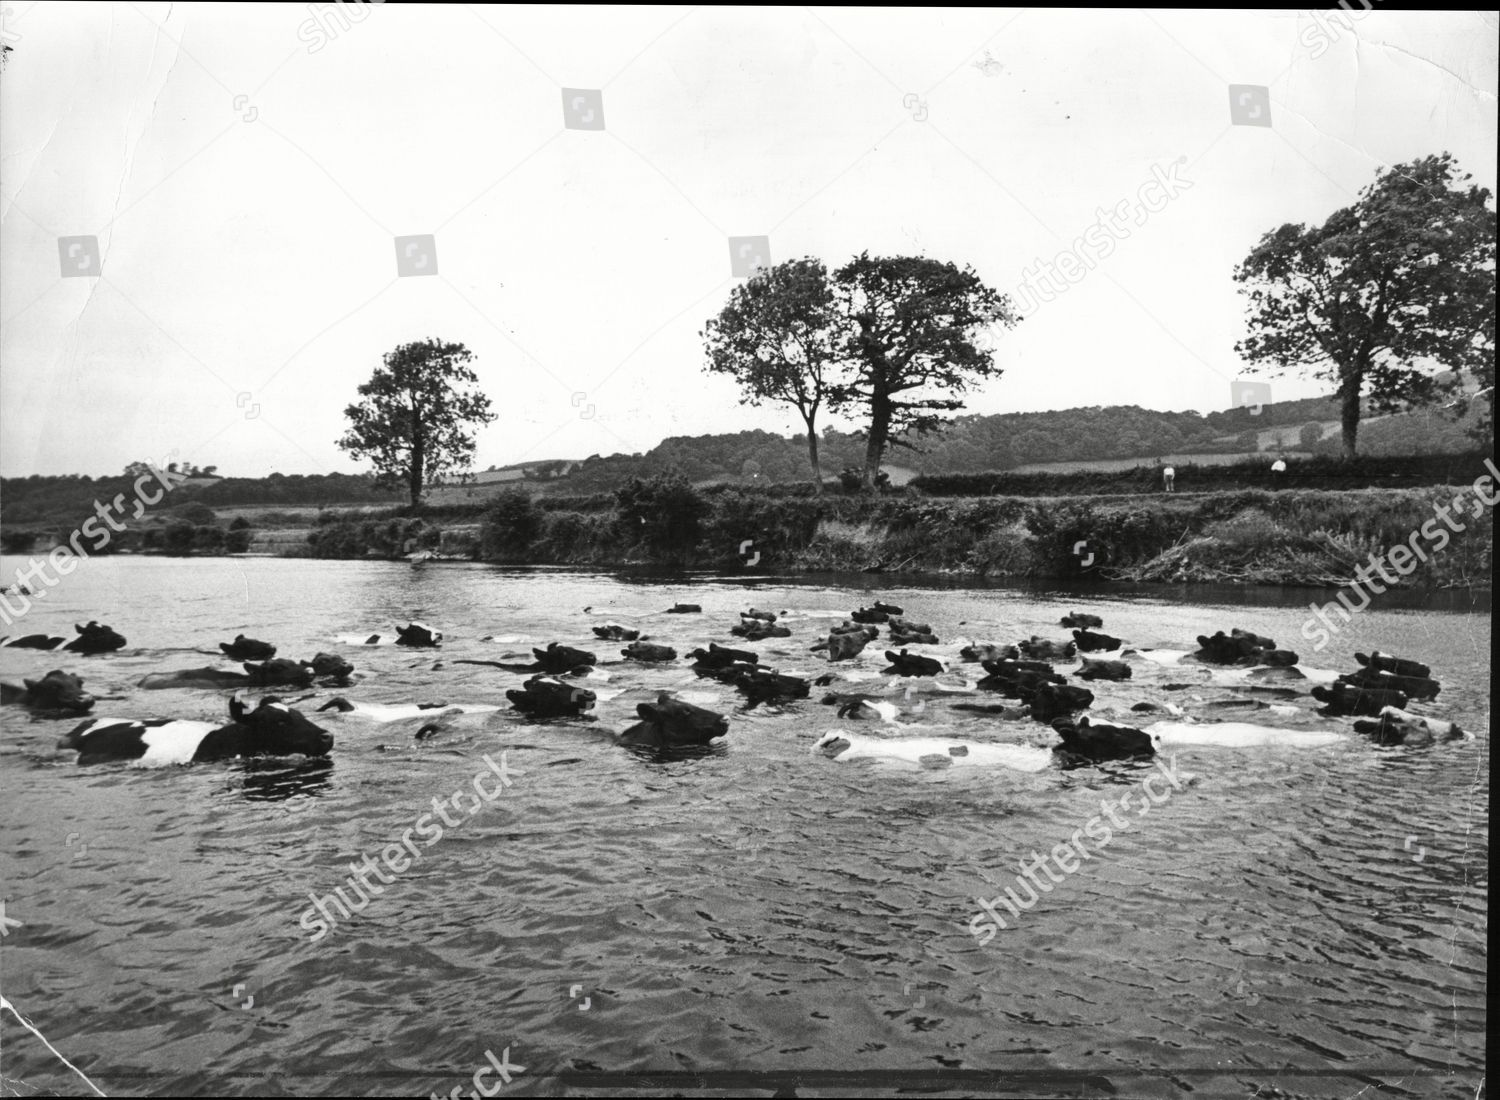 Not Cowboy Insight Cattle Swim Strongly Across Editorial Stock Photo